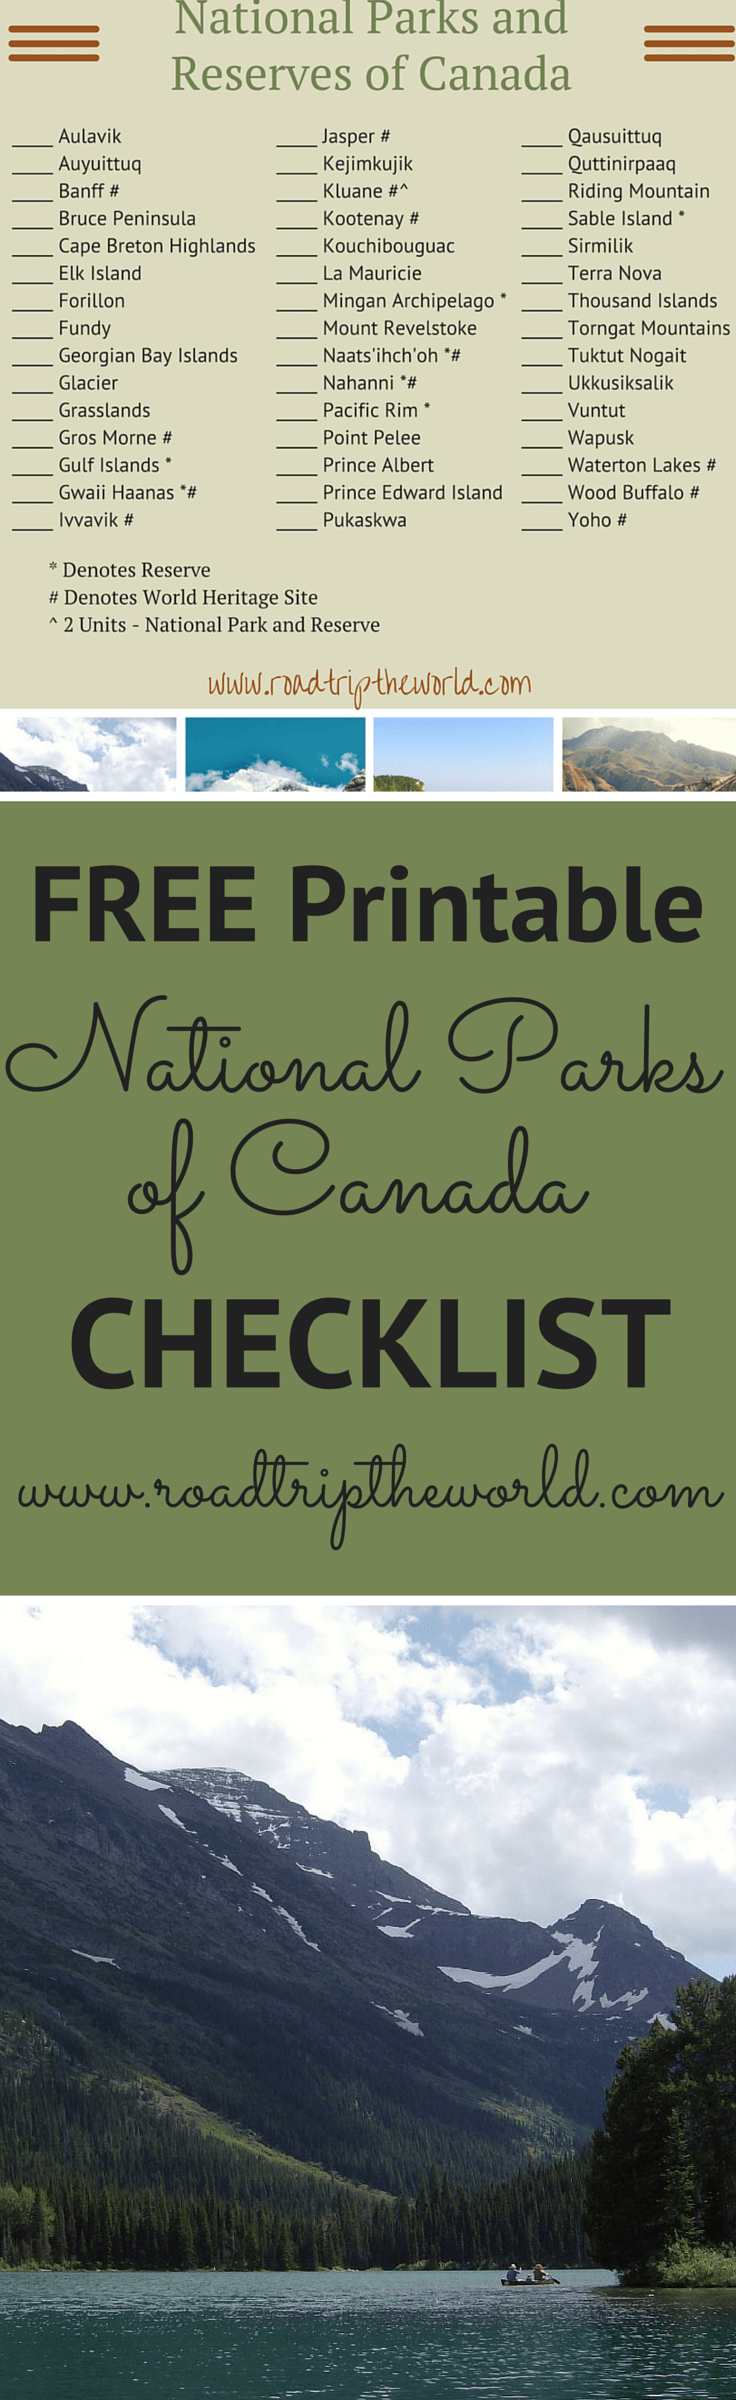 photograph about Printable National Park Checklist named Canada Countrywide Parks Printable Record - Street Getaway the Environment